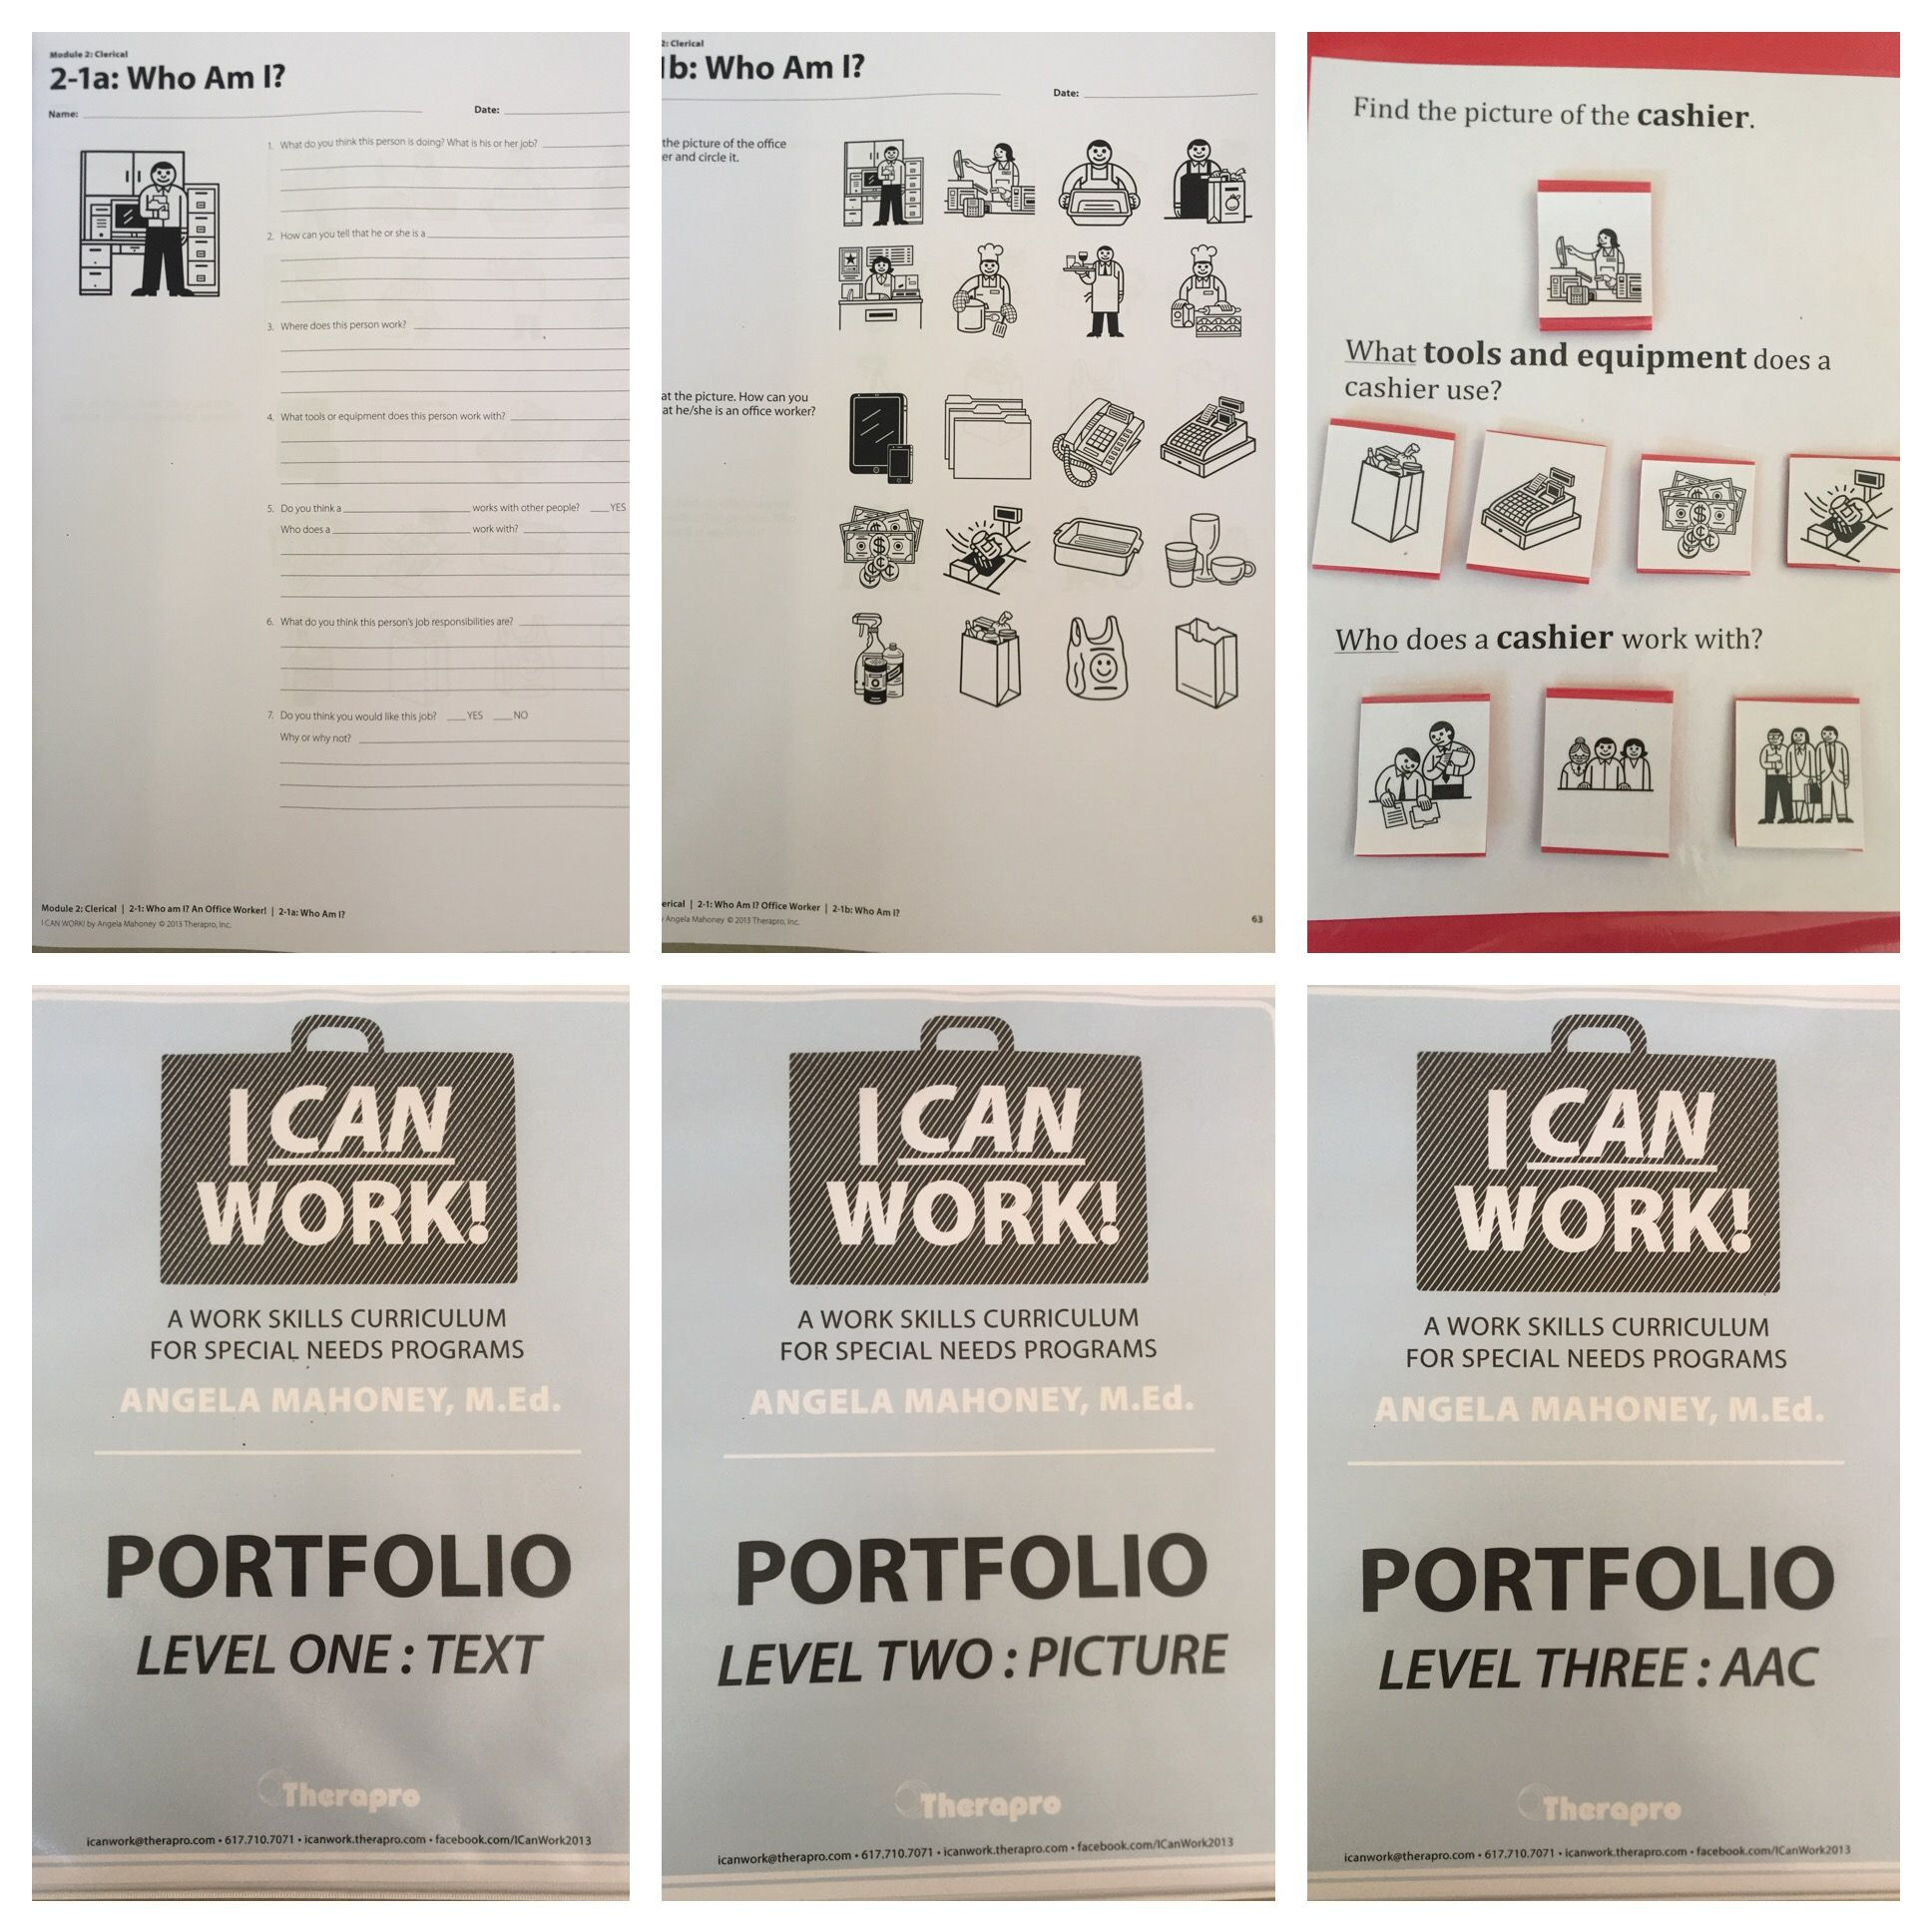 Did You Know With Icanwork One Lesson Can Be Presented In